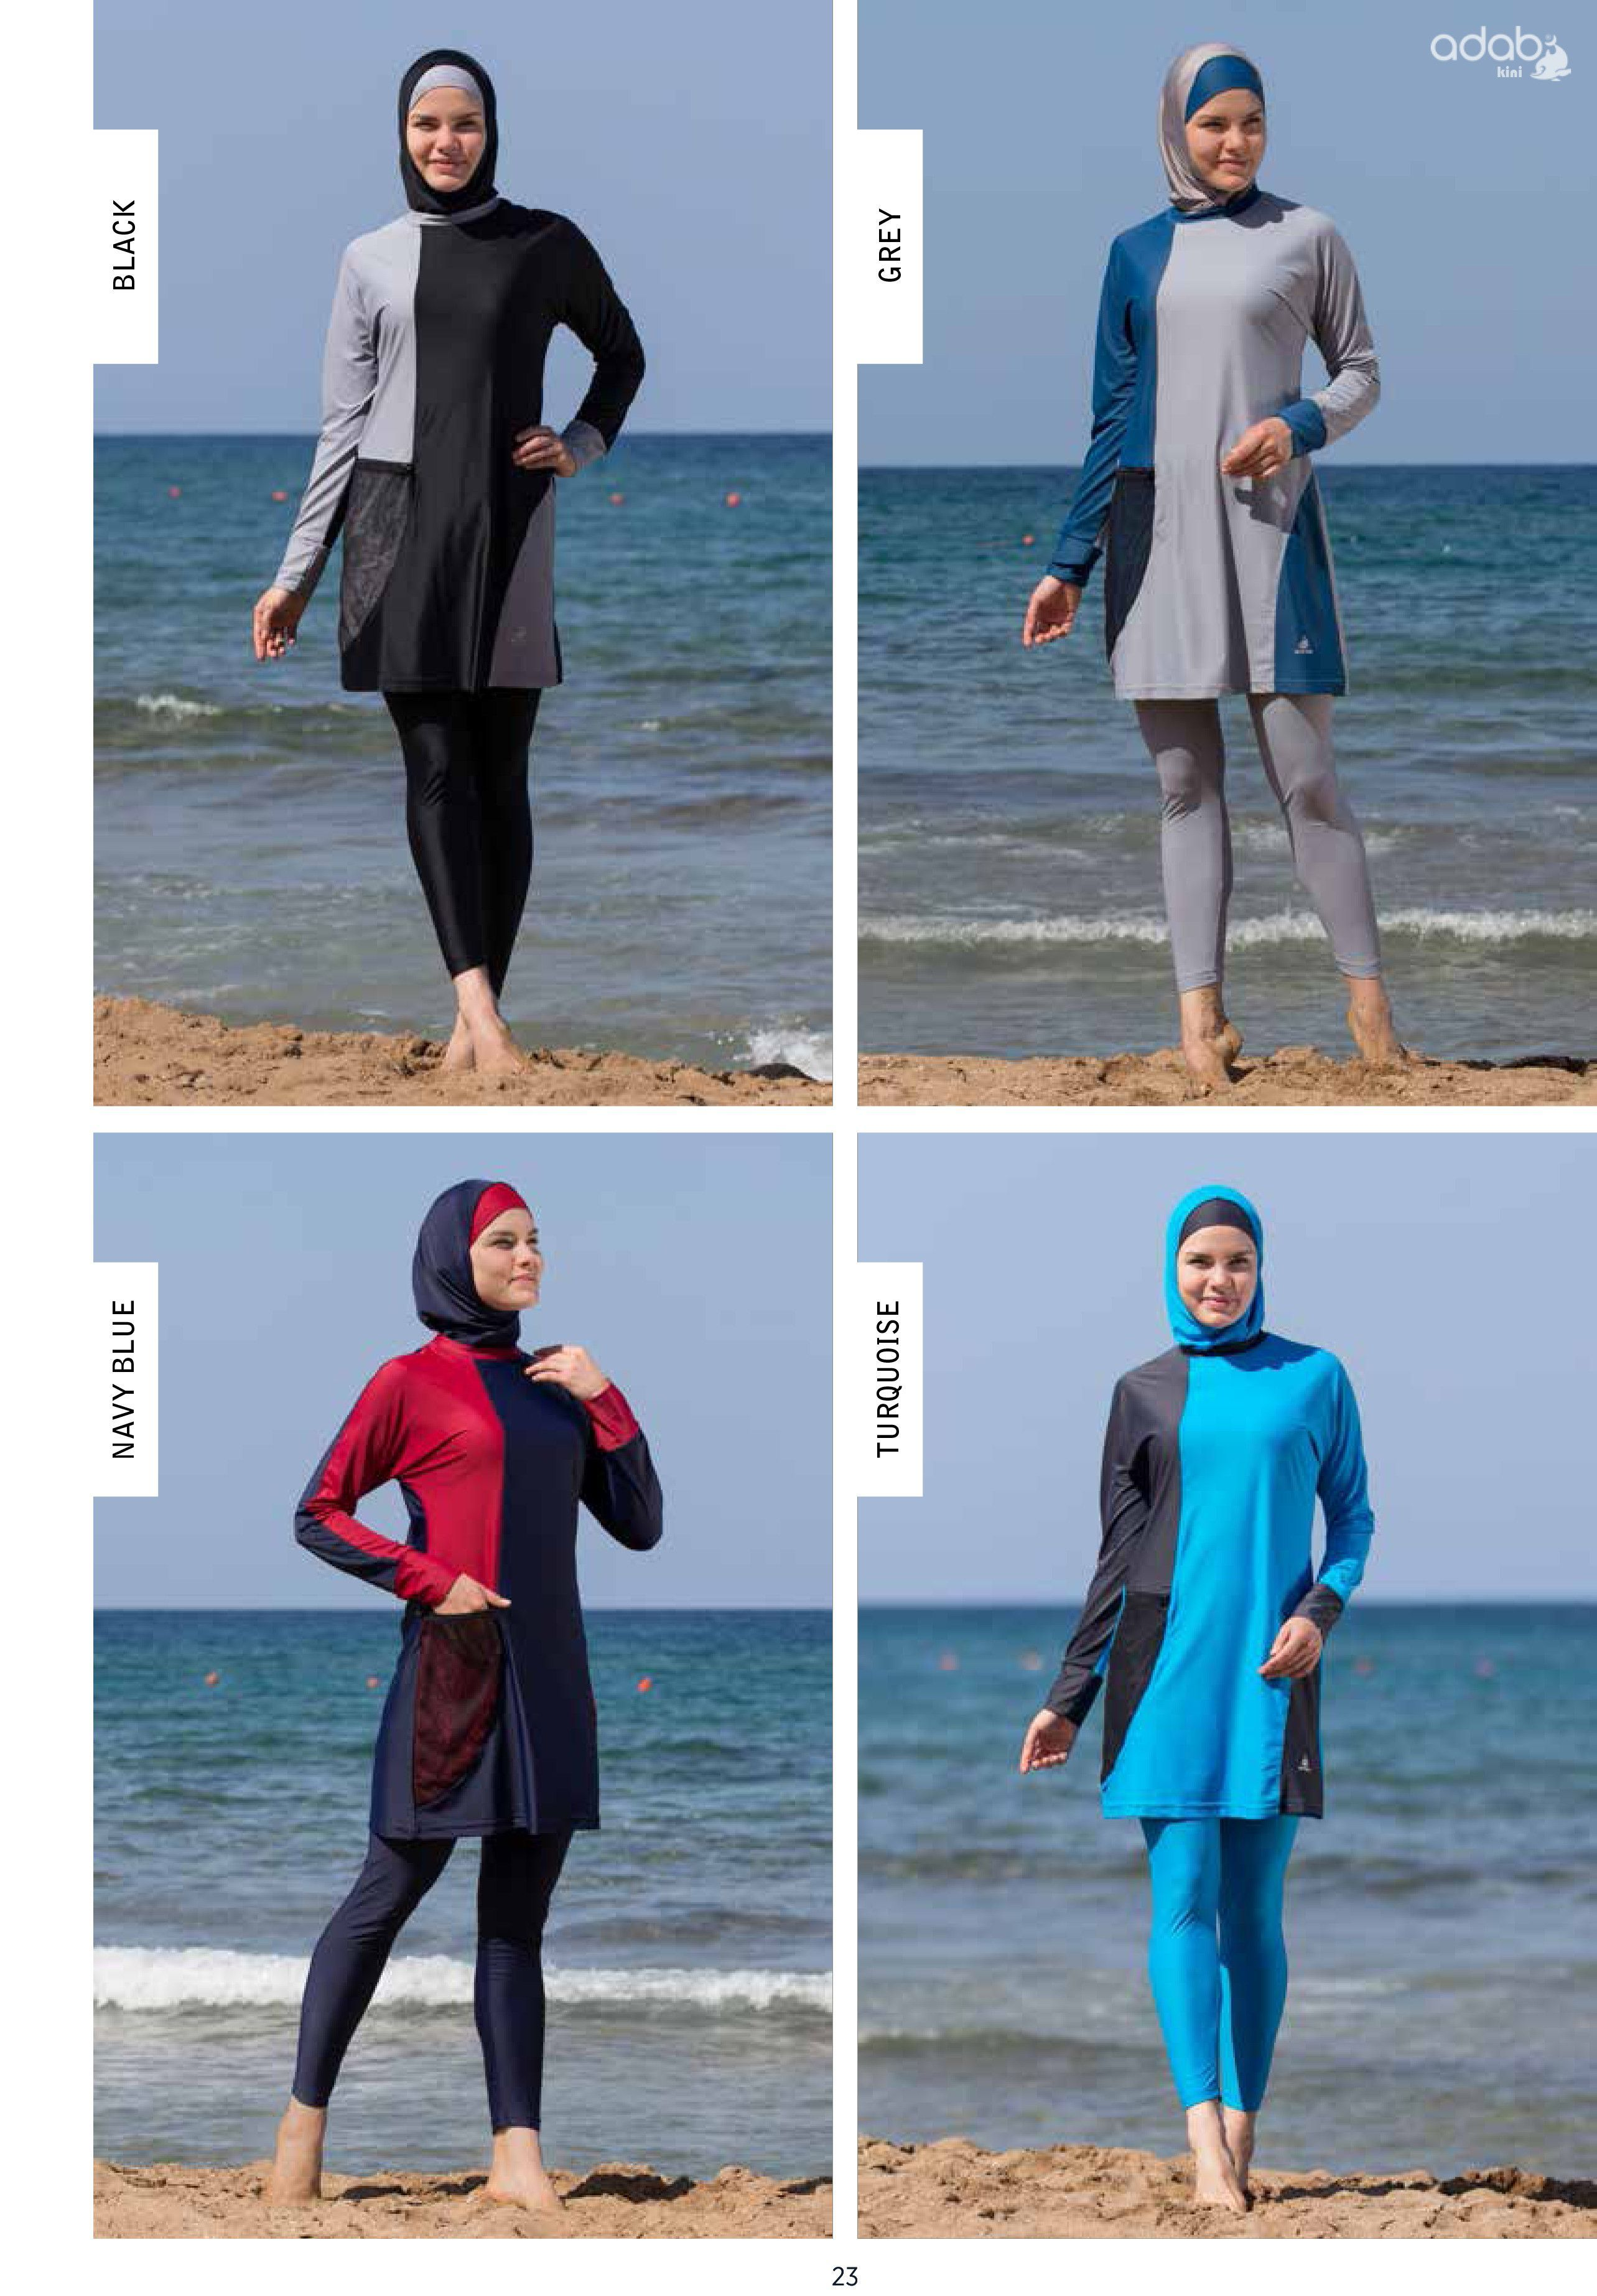 497388b486 Adabkini DURU Women's Swimsuit Full Cover Hijab Burkini Islamic, Hindu, Arab,  Jewish Swimwear